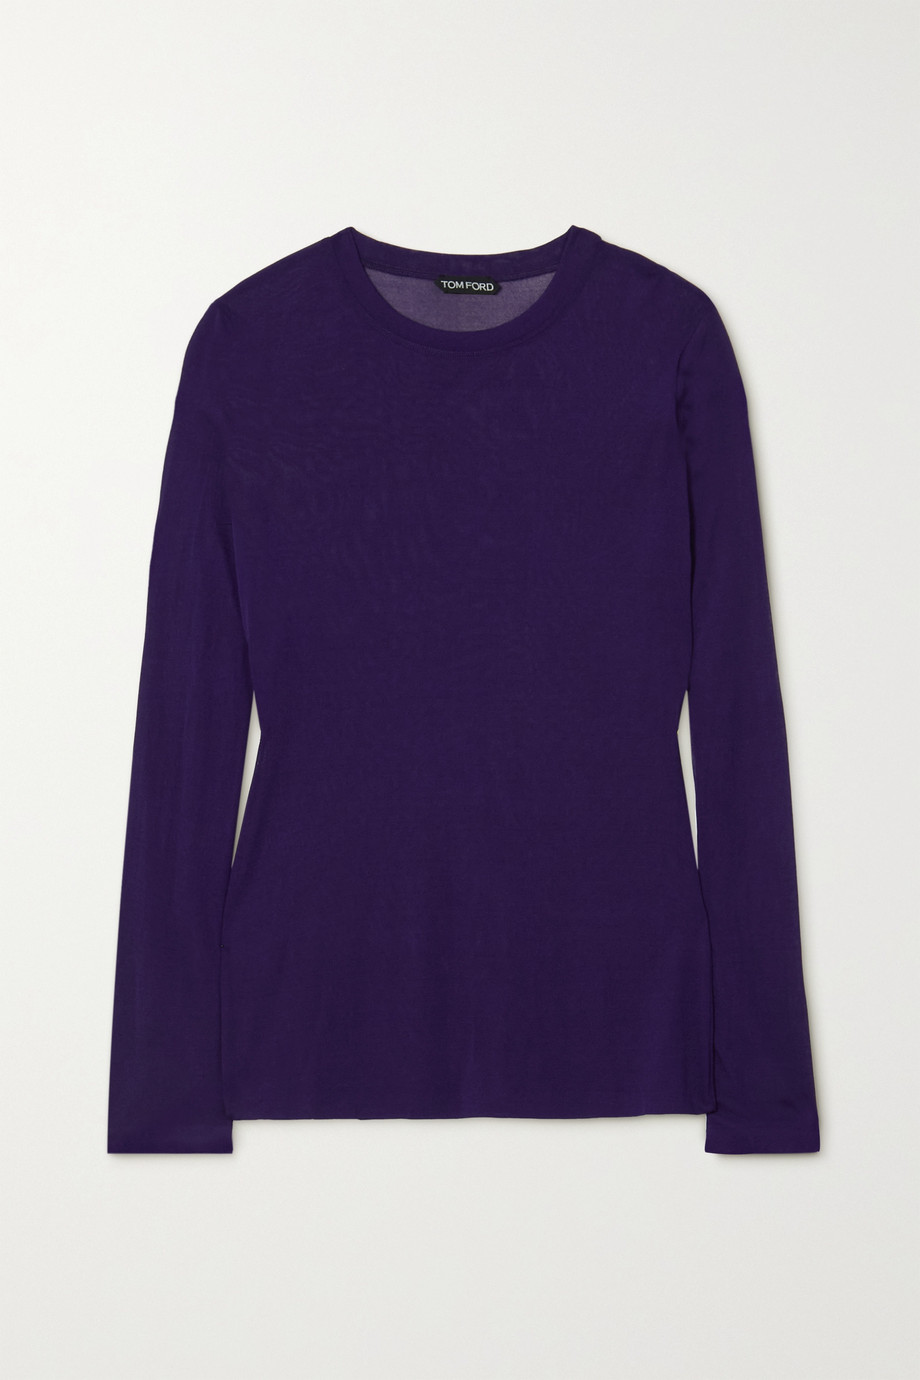 TOM FORD Stretch-knit top